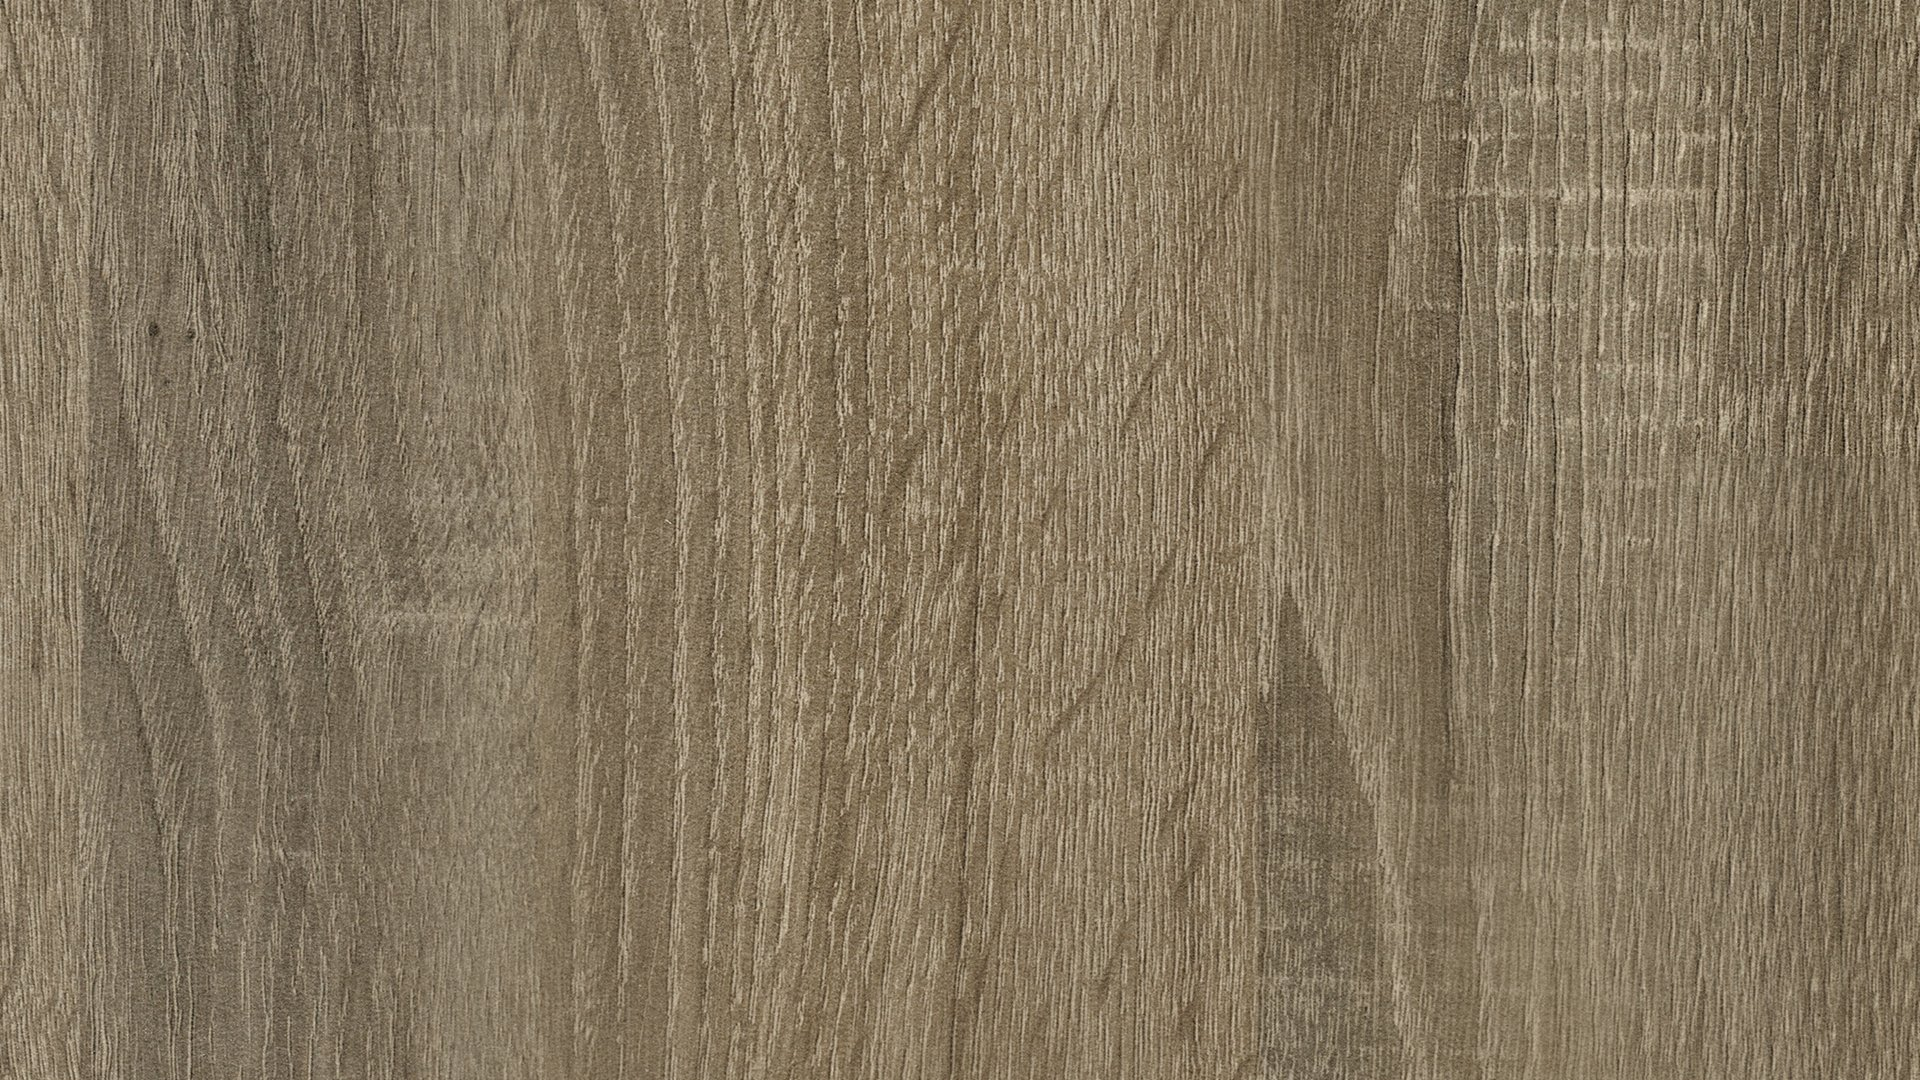 Oak Wood Texture Seamless O